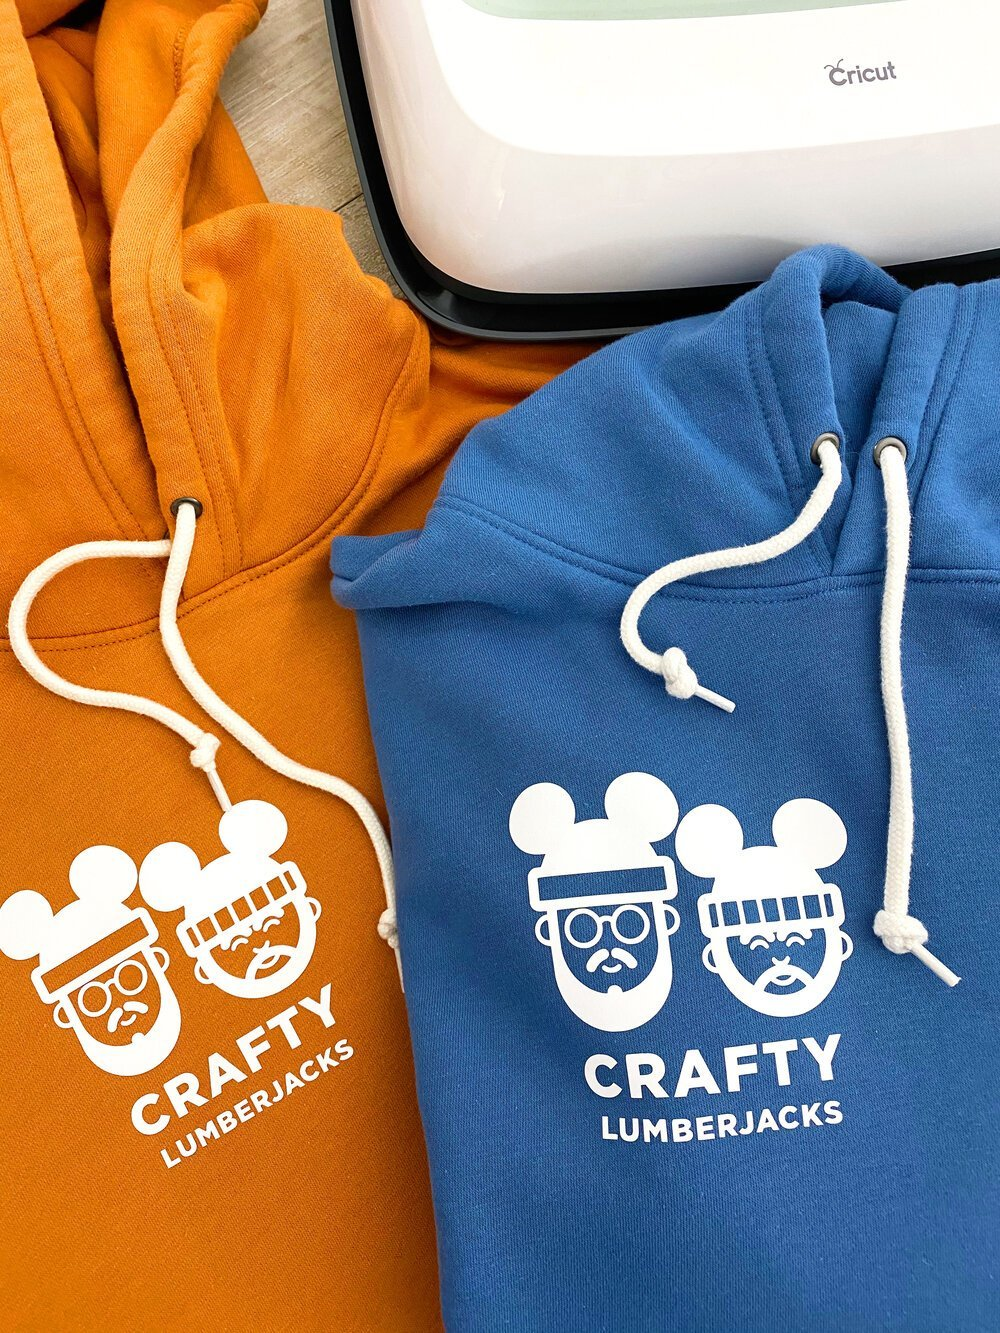 Create your own Disney magic by giving your logo or any image Mickey ears! How to Iron-on using the Cricut Maker. #cricutcreated #cricut #disneyvacation #disneyshirts #mickeyears #disneyworld #disneyland #irononvinyl #easypress #customeshirts #disneyideas #disneyoutfits #gaycouple #disneyfreaks #cricutmaker